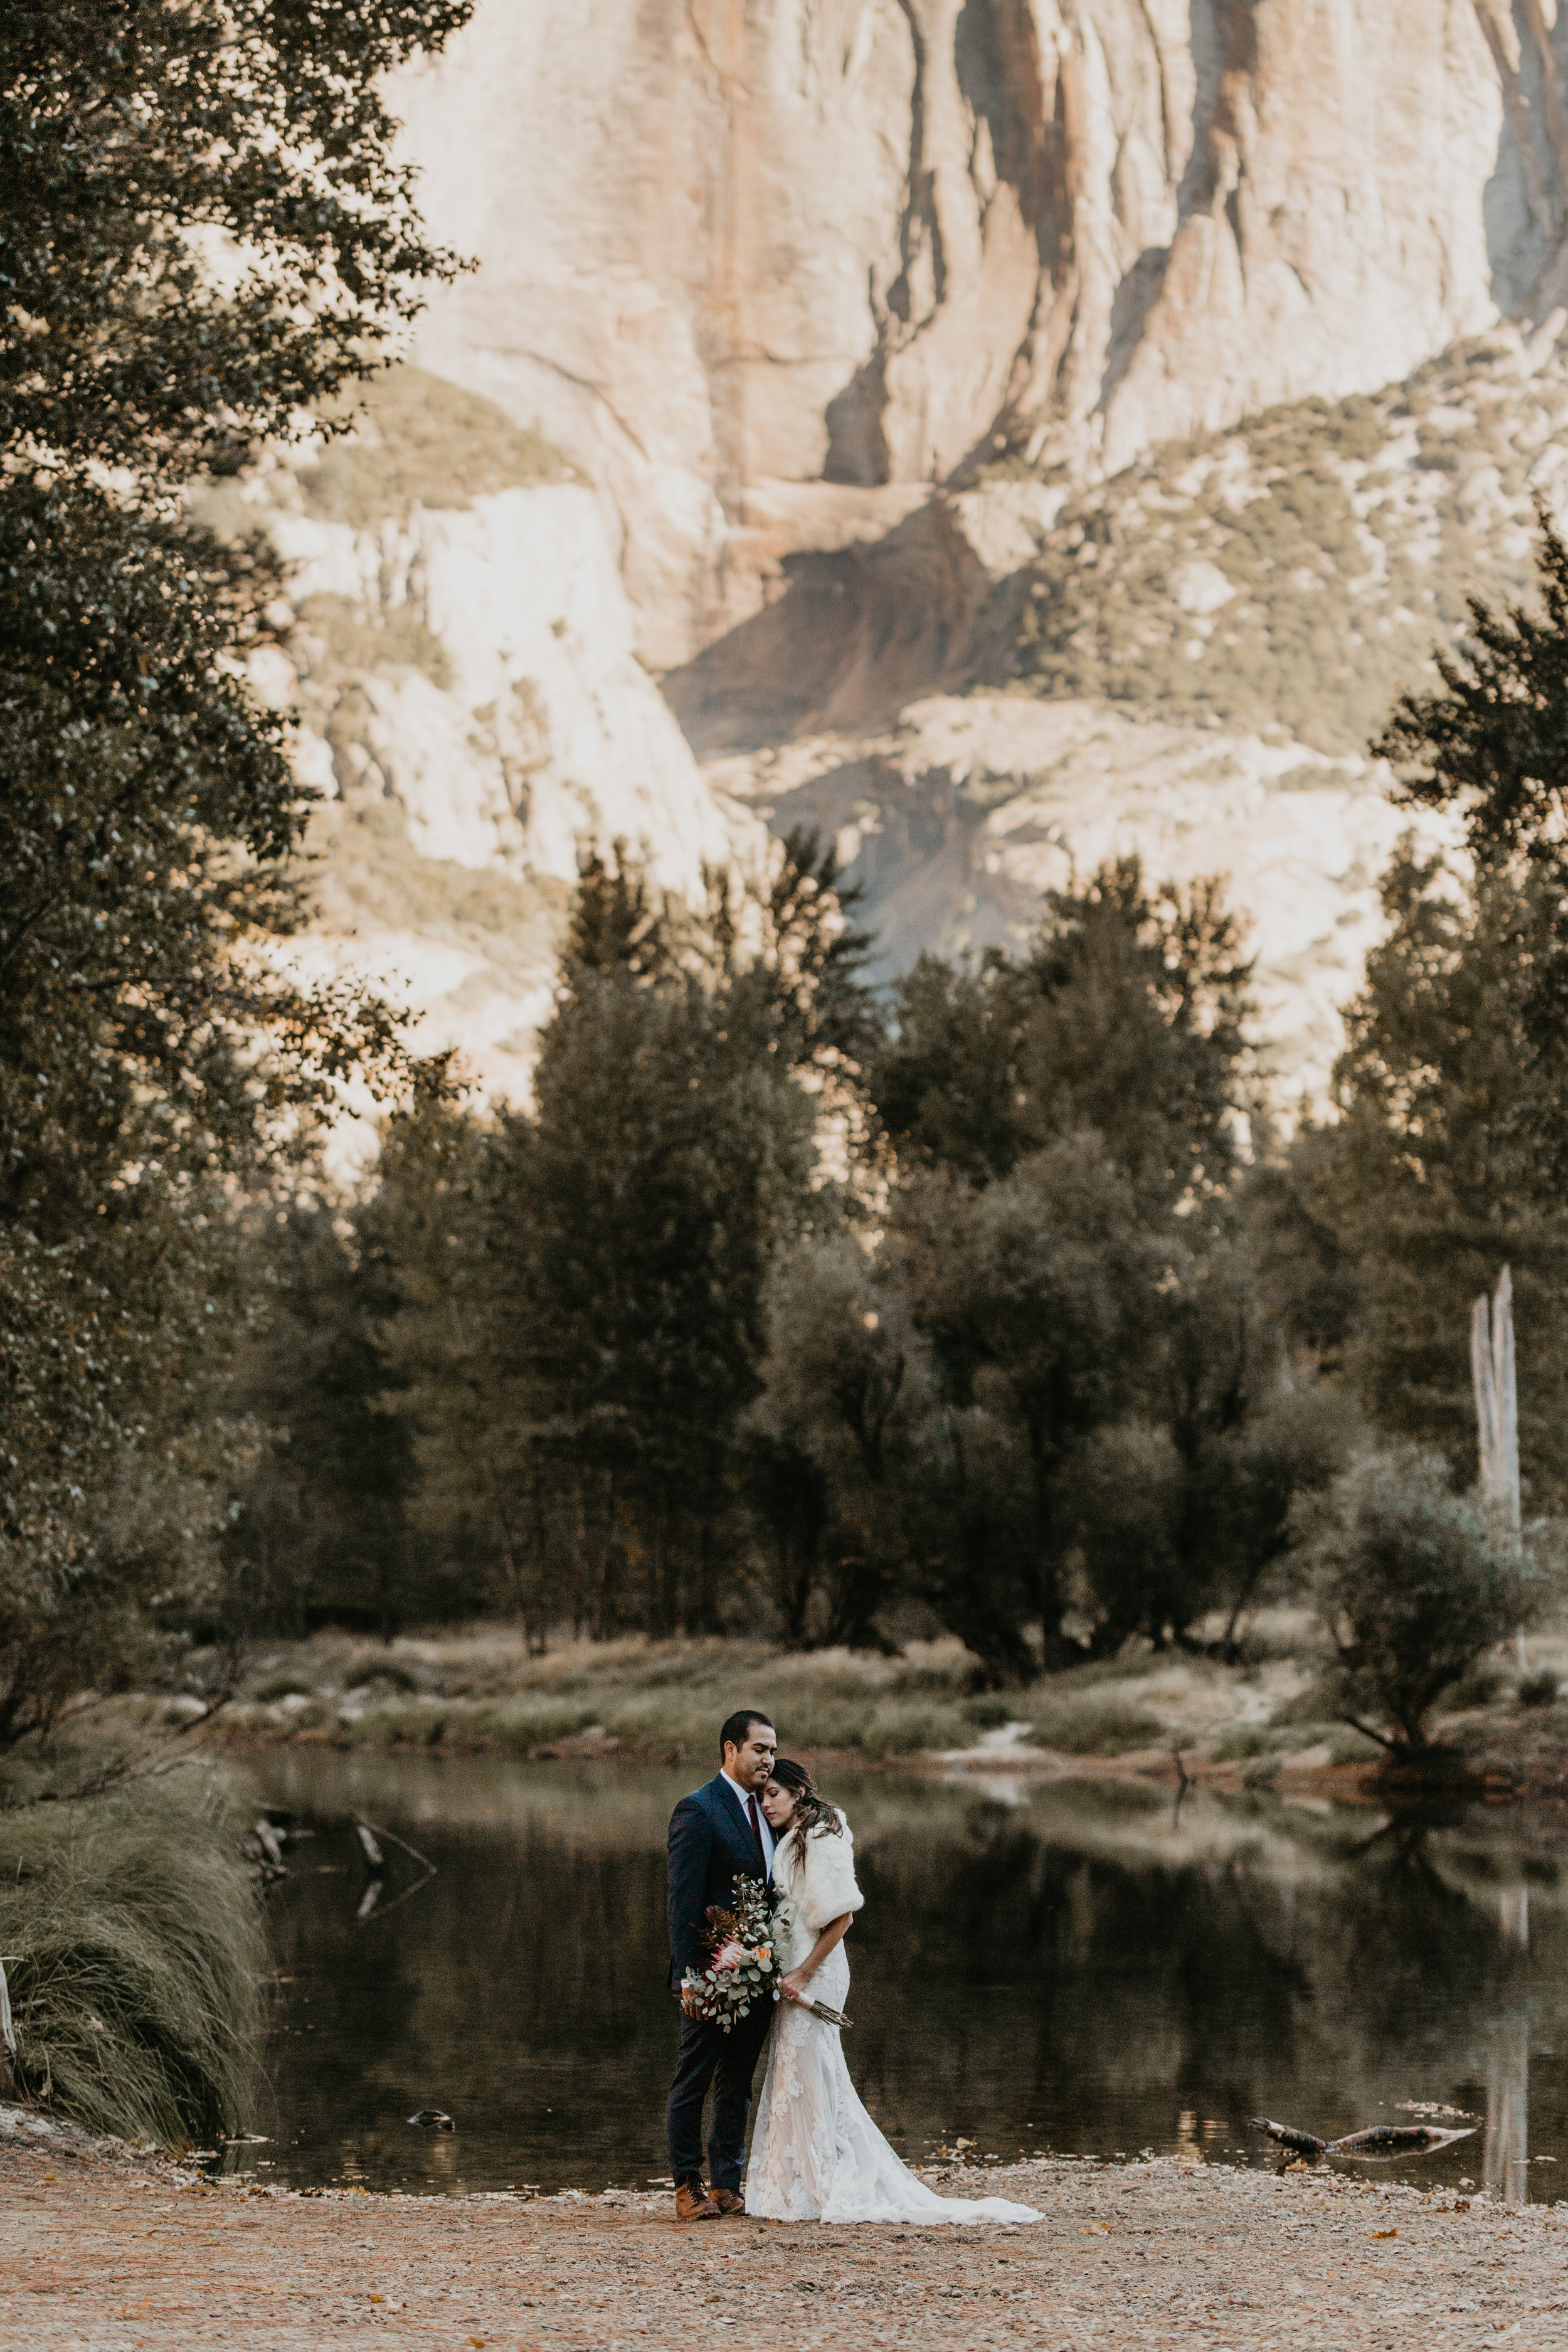 nicole-daacke-photography-intimate-elopement-wedding-yosemite-national-park-california-taft-point-sunset-photos-yosemite-valley-tunnel-view-first-look-sunrise-golden-granite-hiking-adventure-wedding-adventurous-elopement-photographer-26.jpg